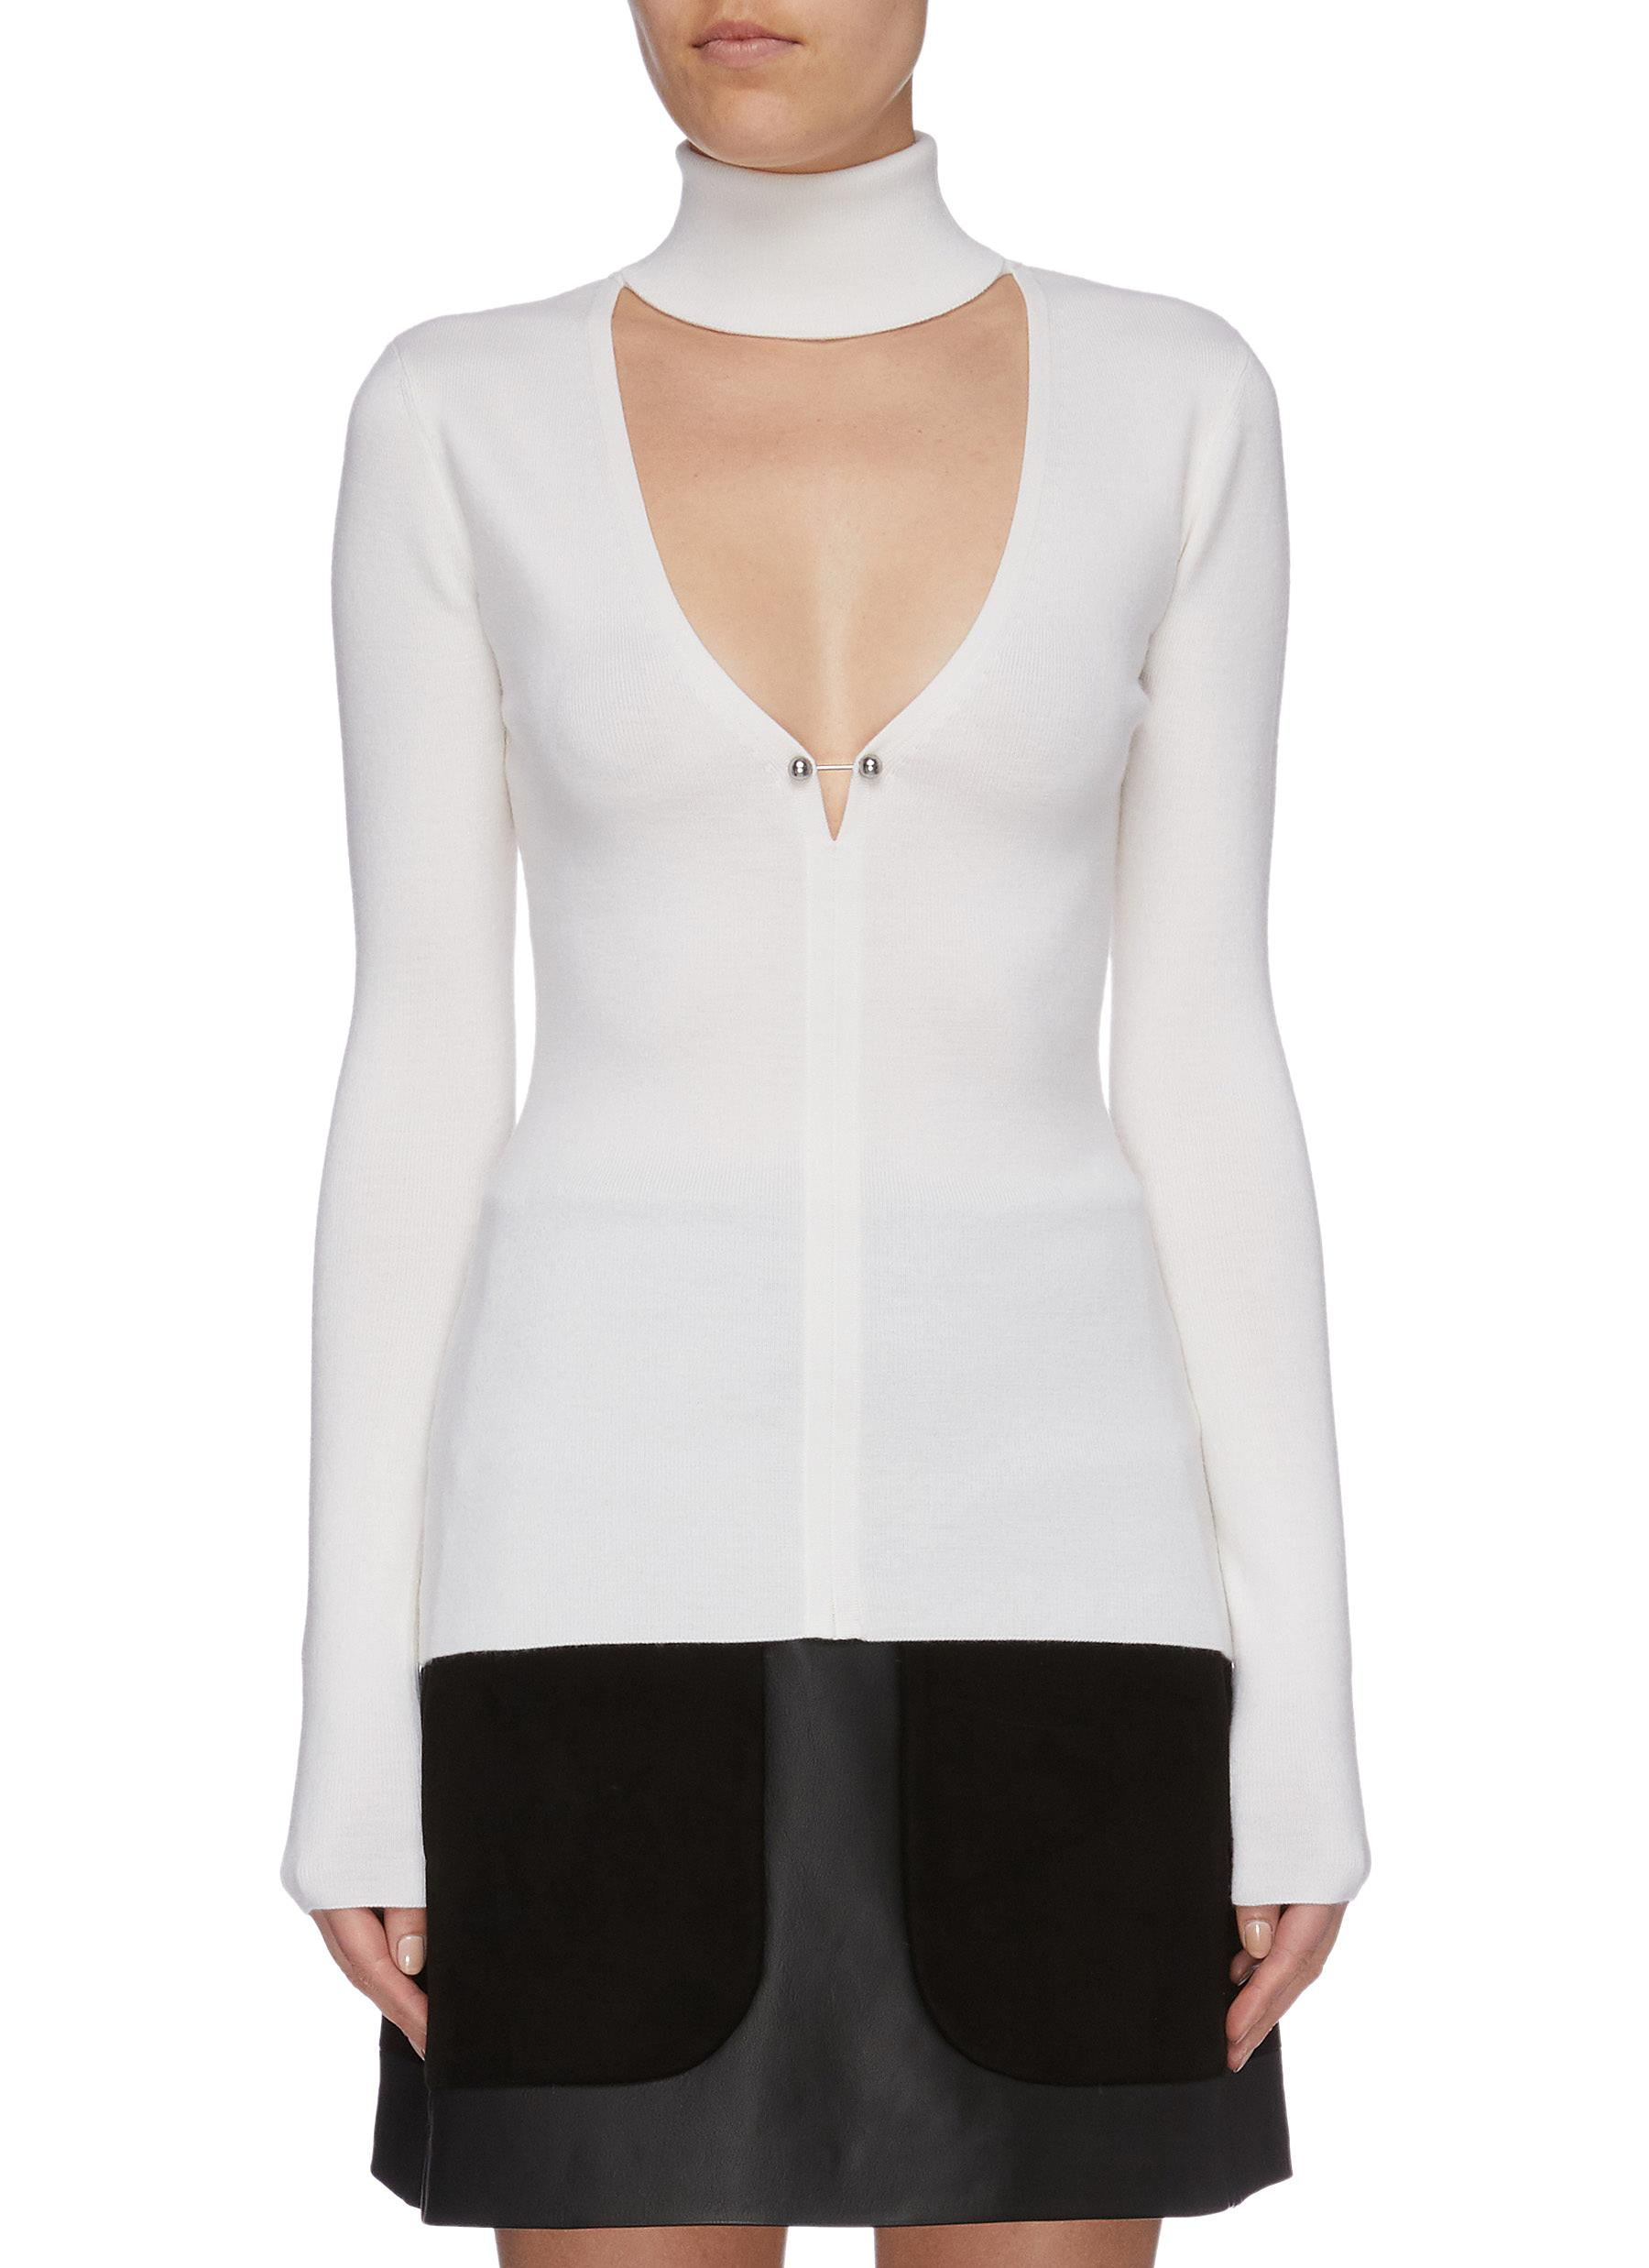 Pierced cutout yoke Merino wool blend knit turtleneck top by Dion Lee